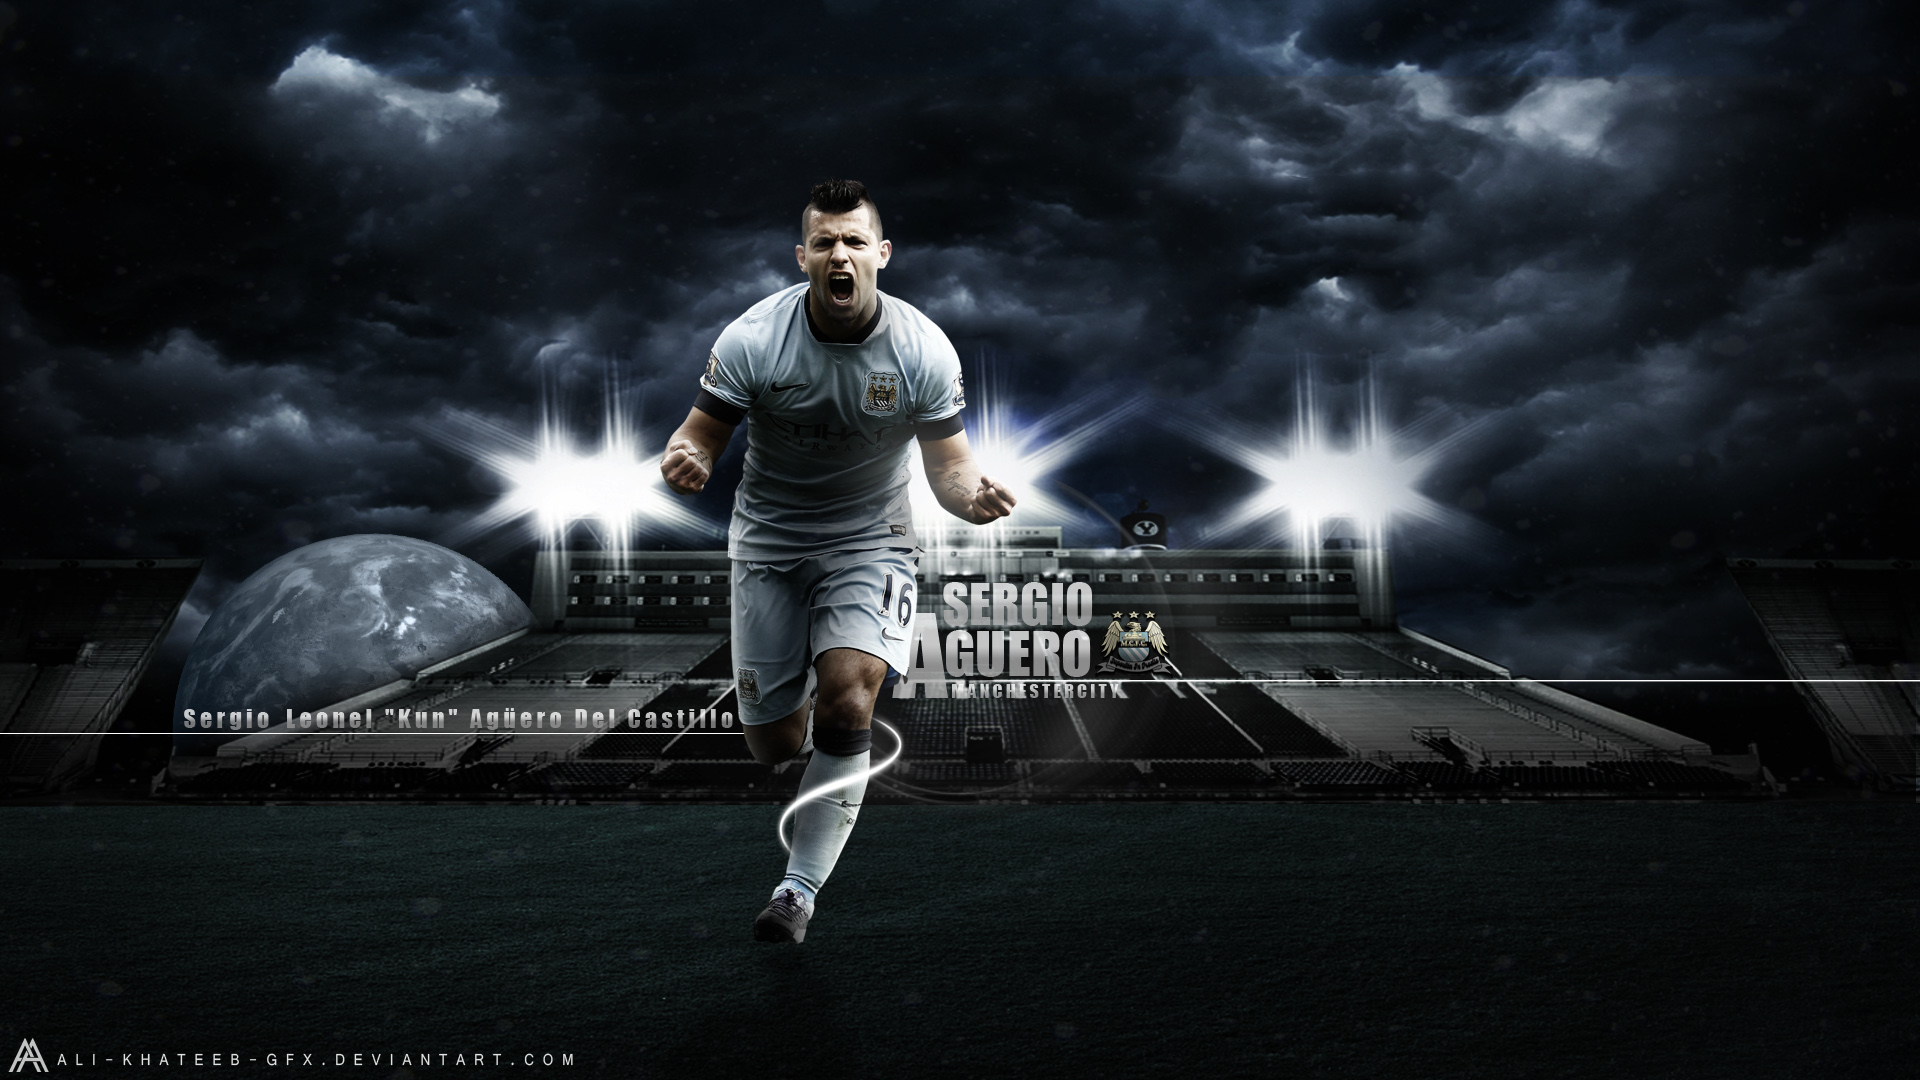 Sergio Aguero Wallpapers: Sergio Aguero Wallpapers High Resolution And Quality